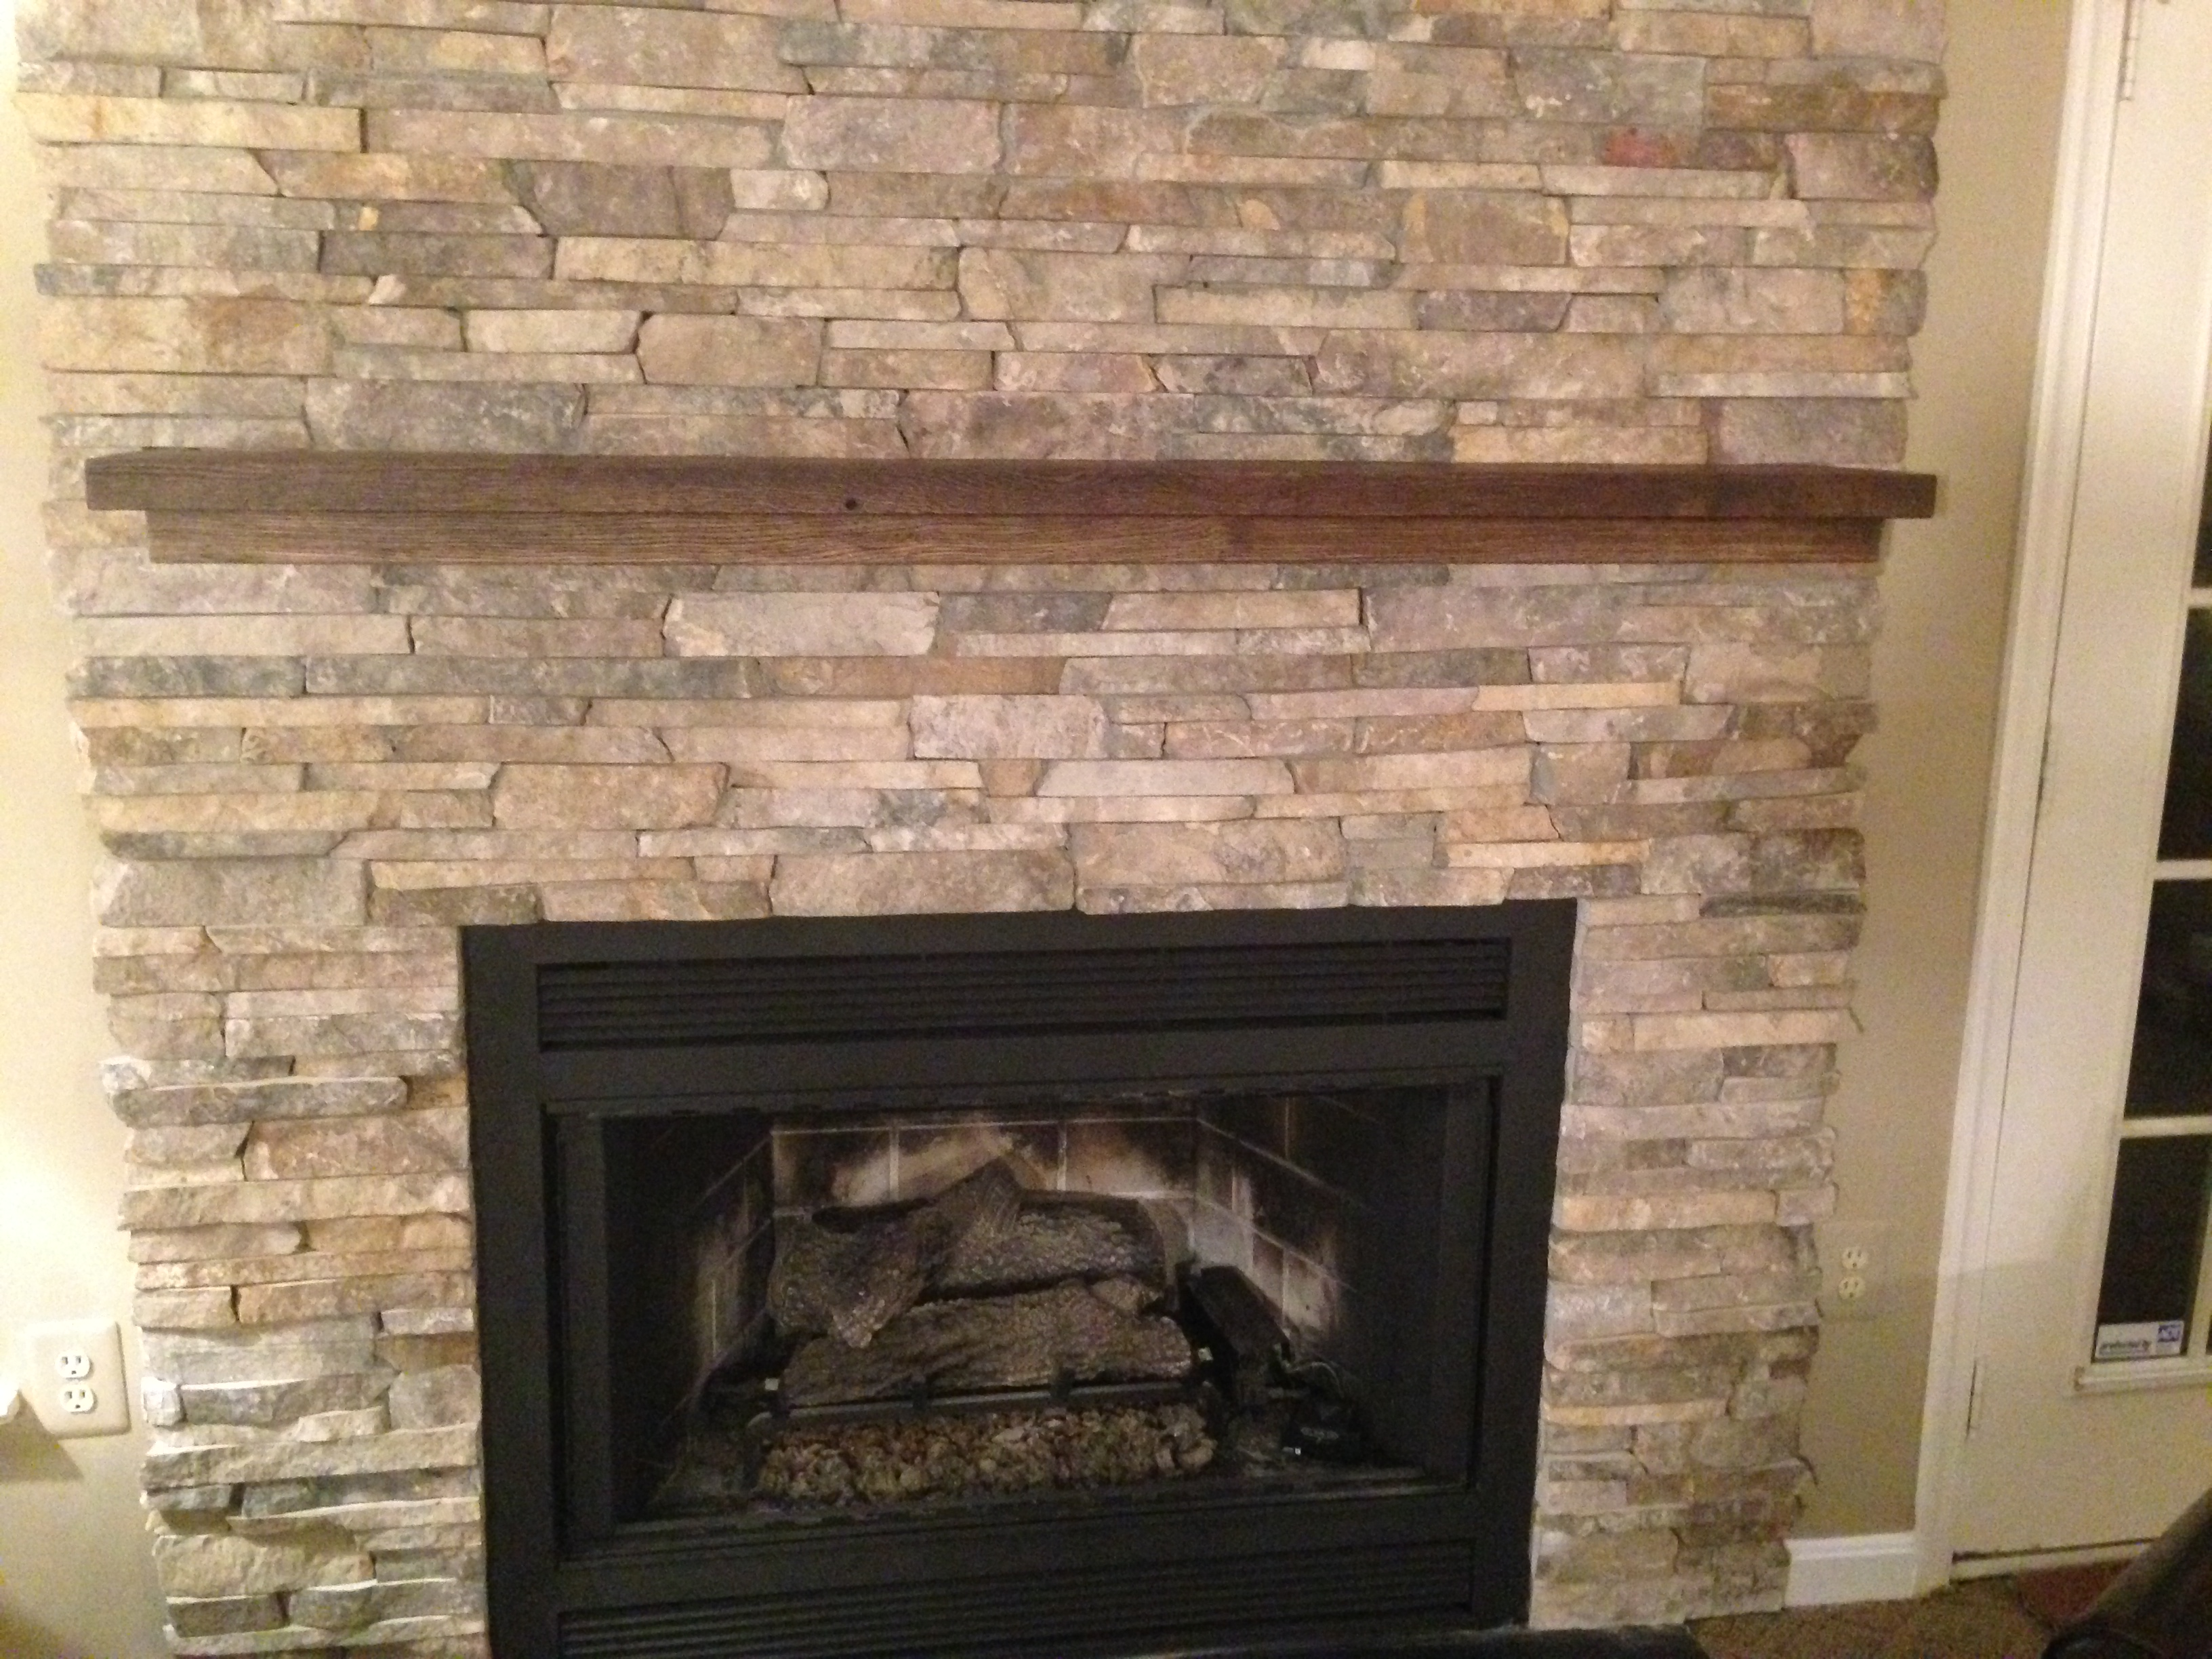 How To Build And Attach A Fireplace Mantle The Sawdust Files